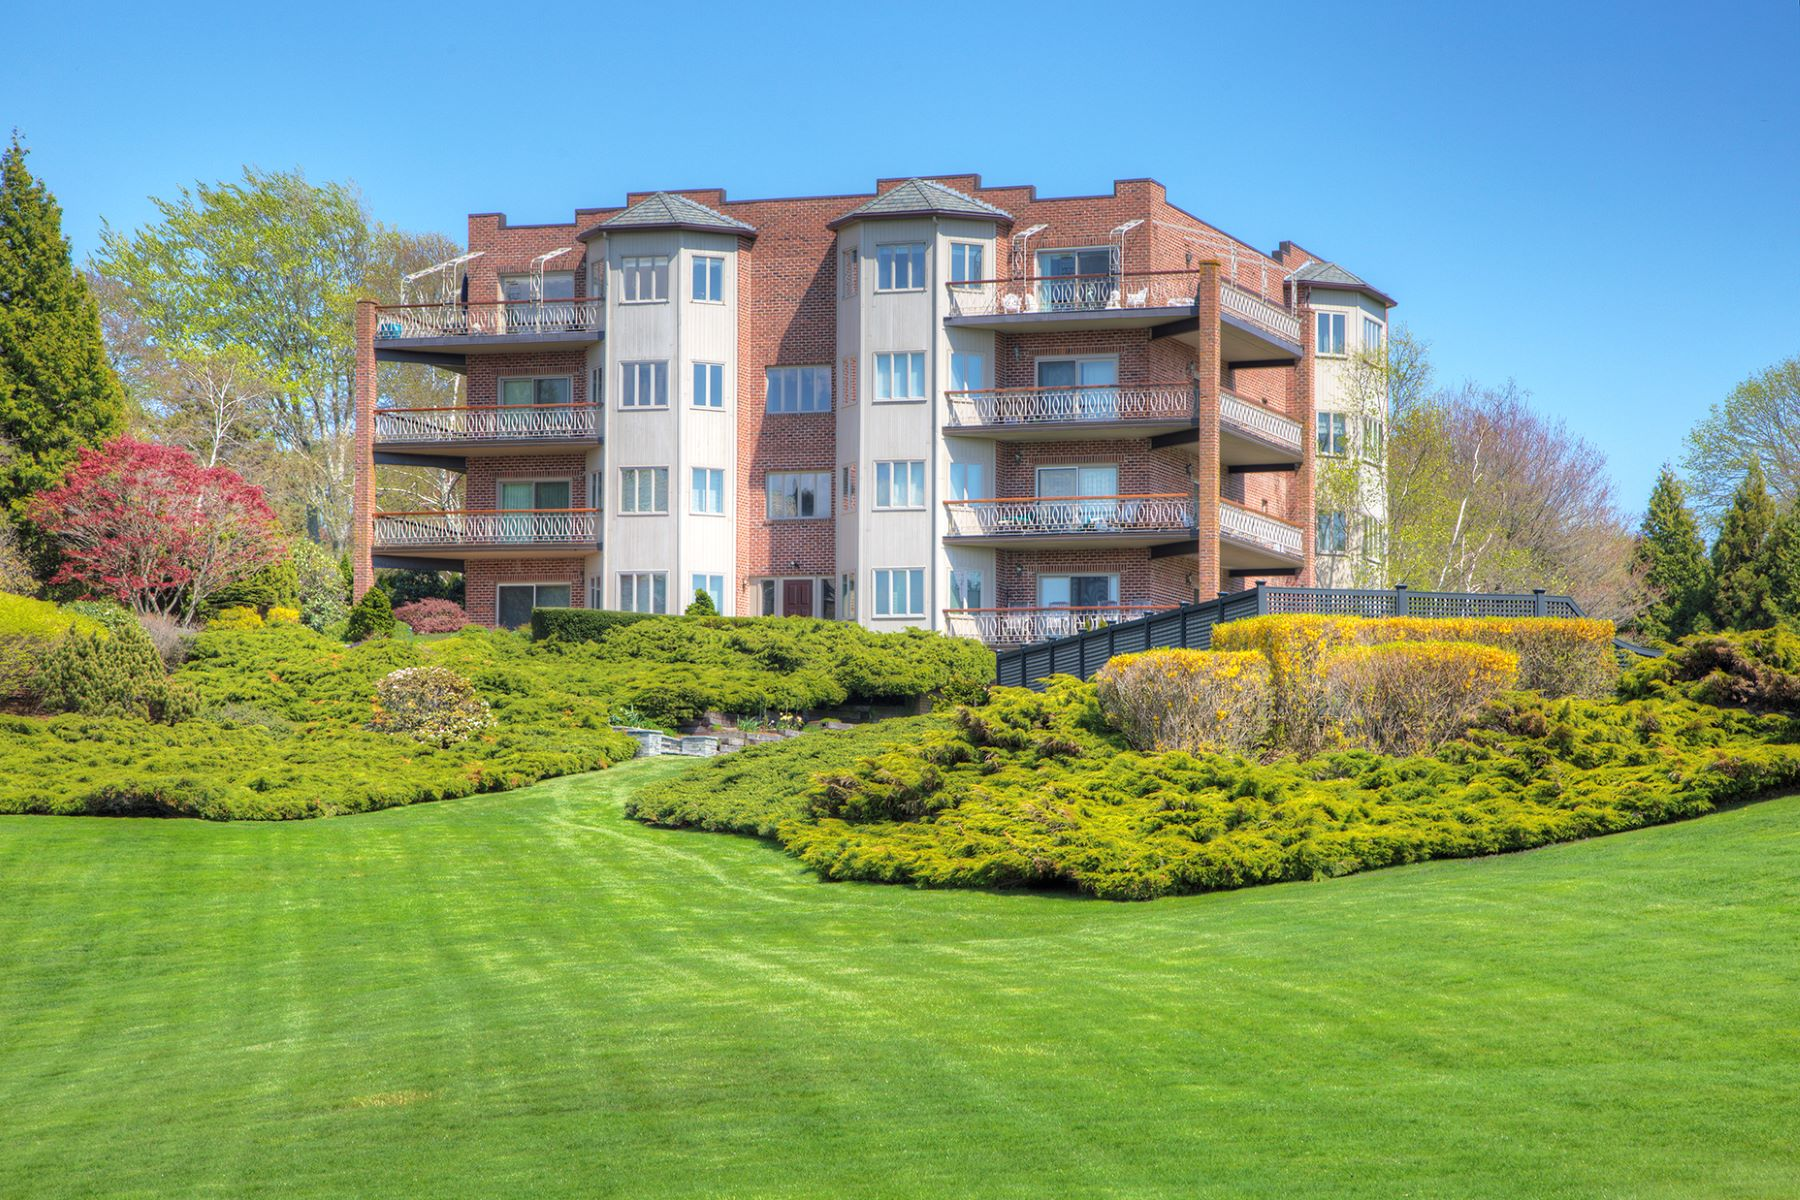 Condominium for Sale at Bonniecrest 111 Harrison Avenue Unit D-4 Newport, Rhode Island 02840 United States